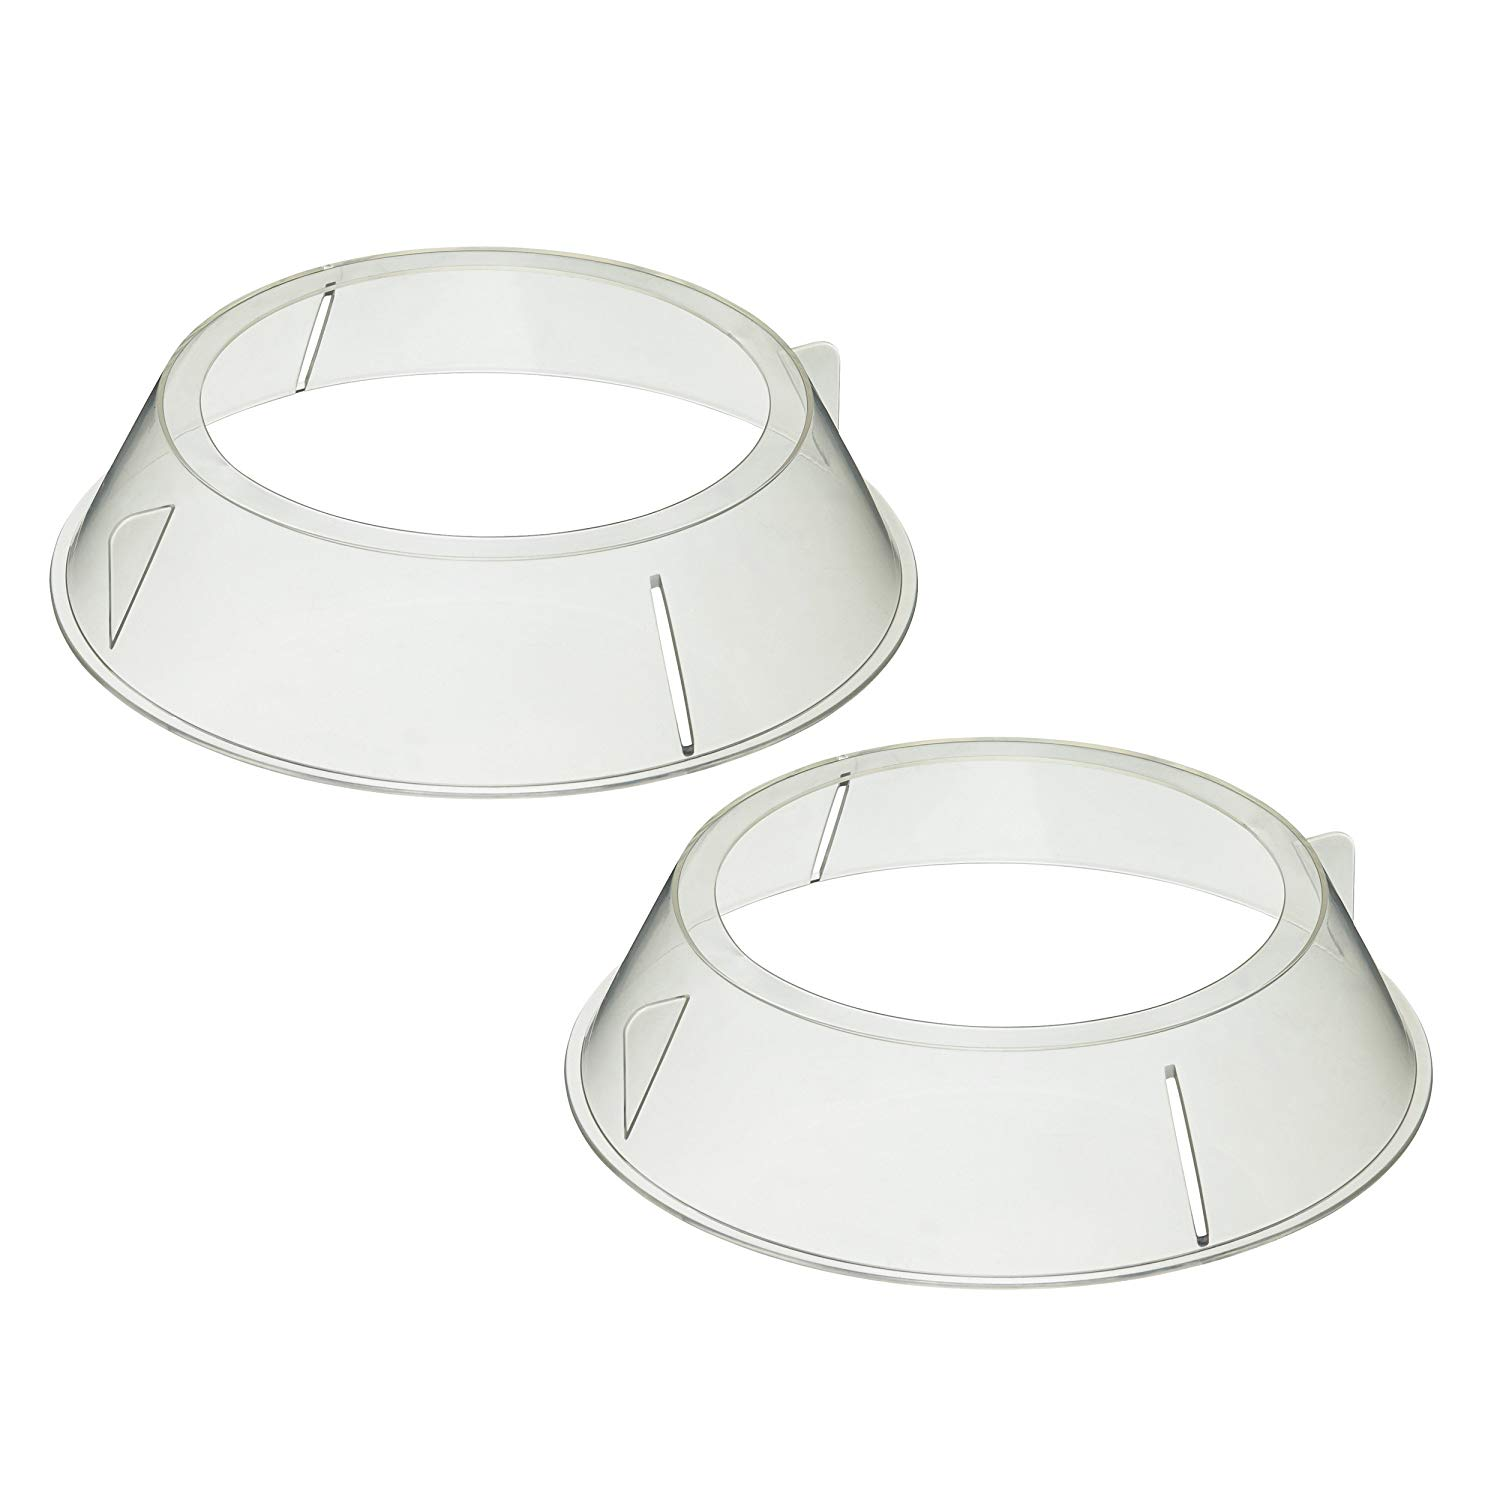 Kitchen Craft Microwave Cookware Stacking Plate Rings, Set Of 2 By Kitchencraft